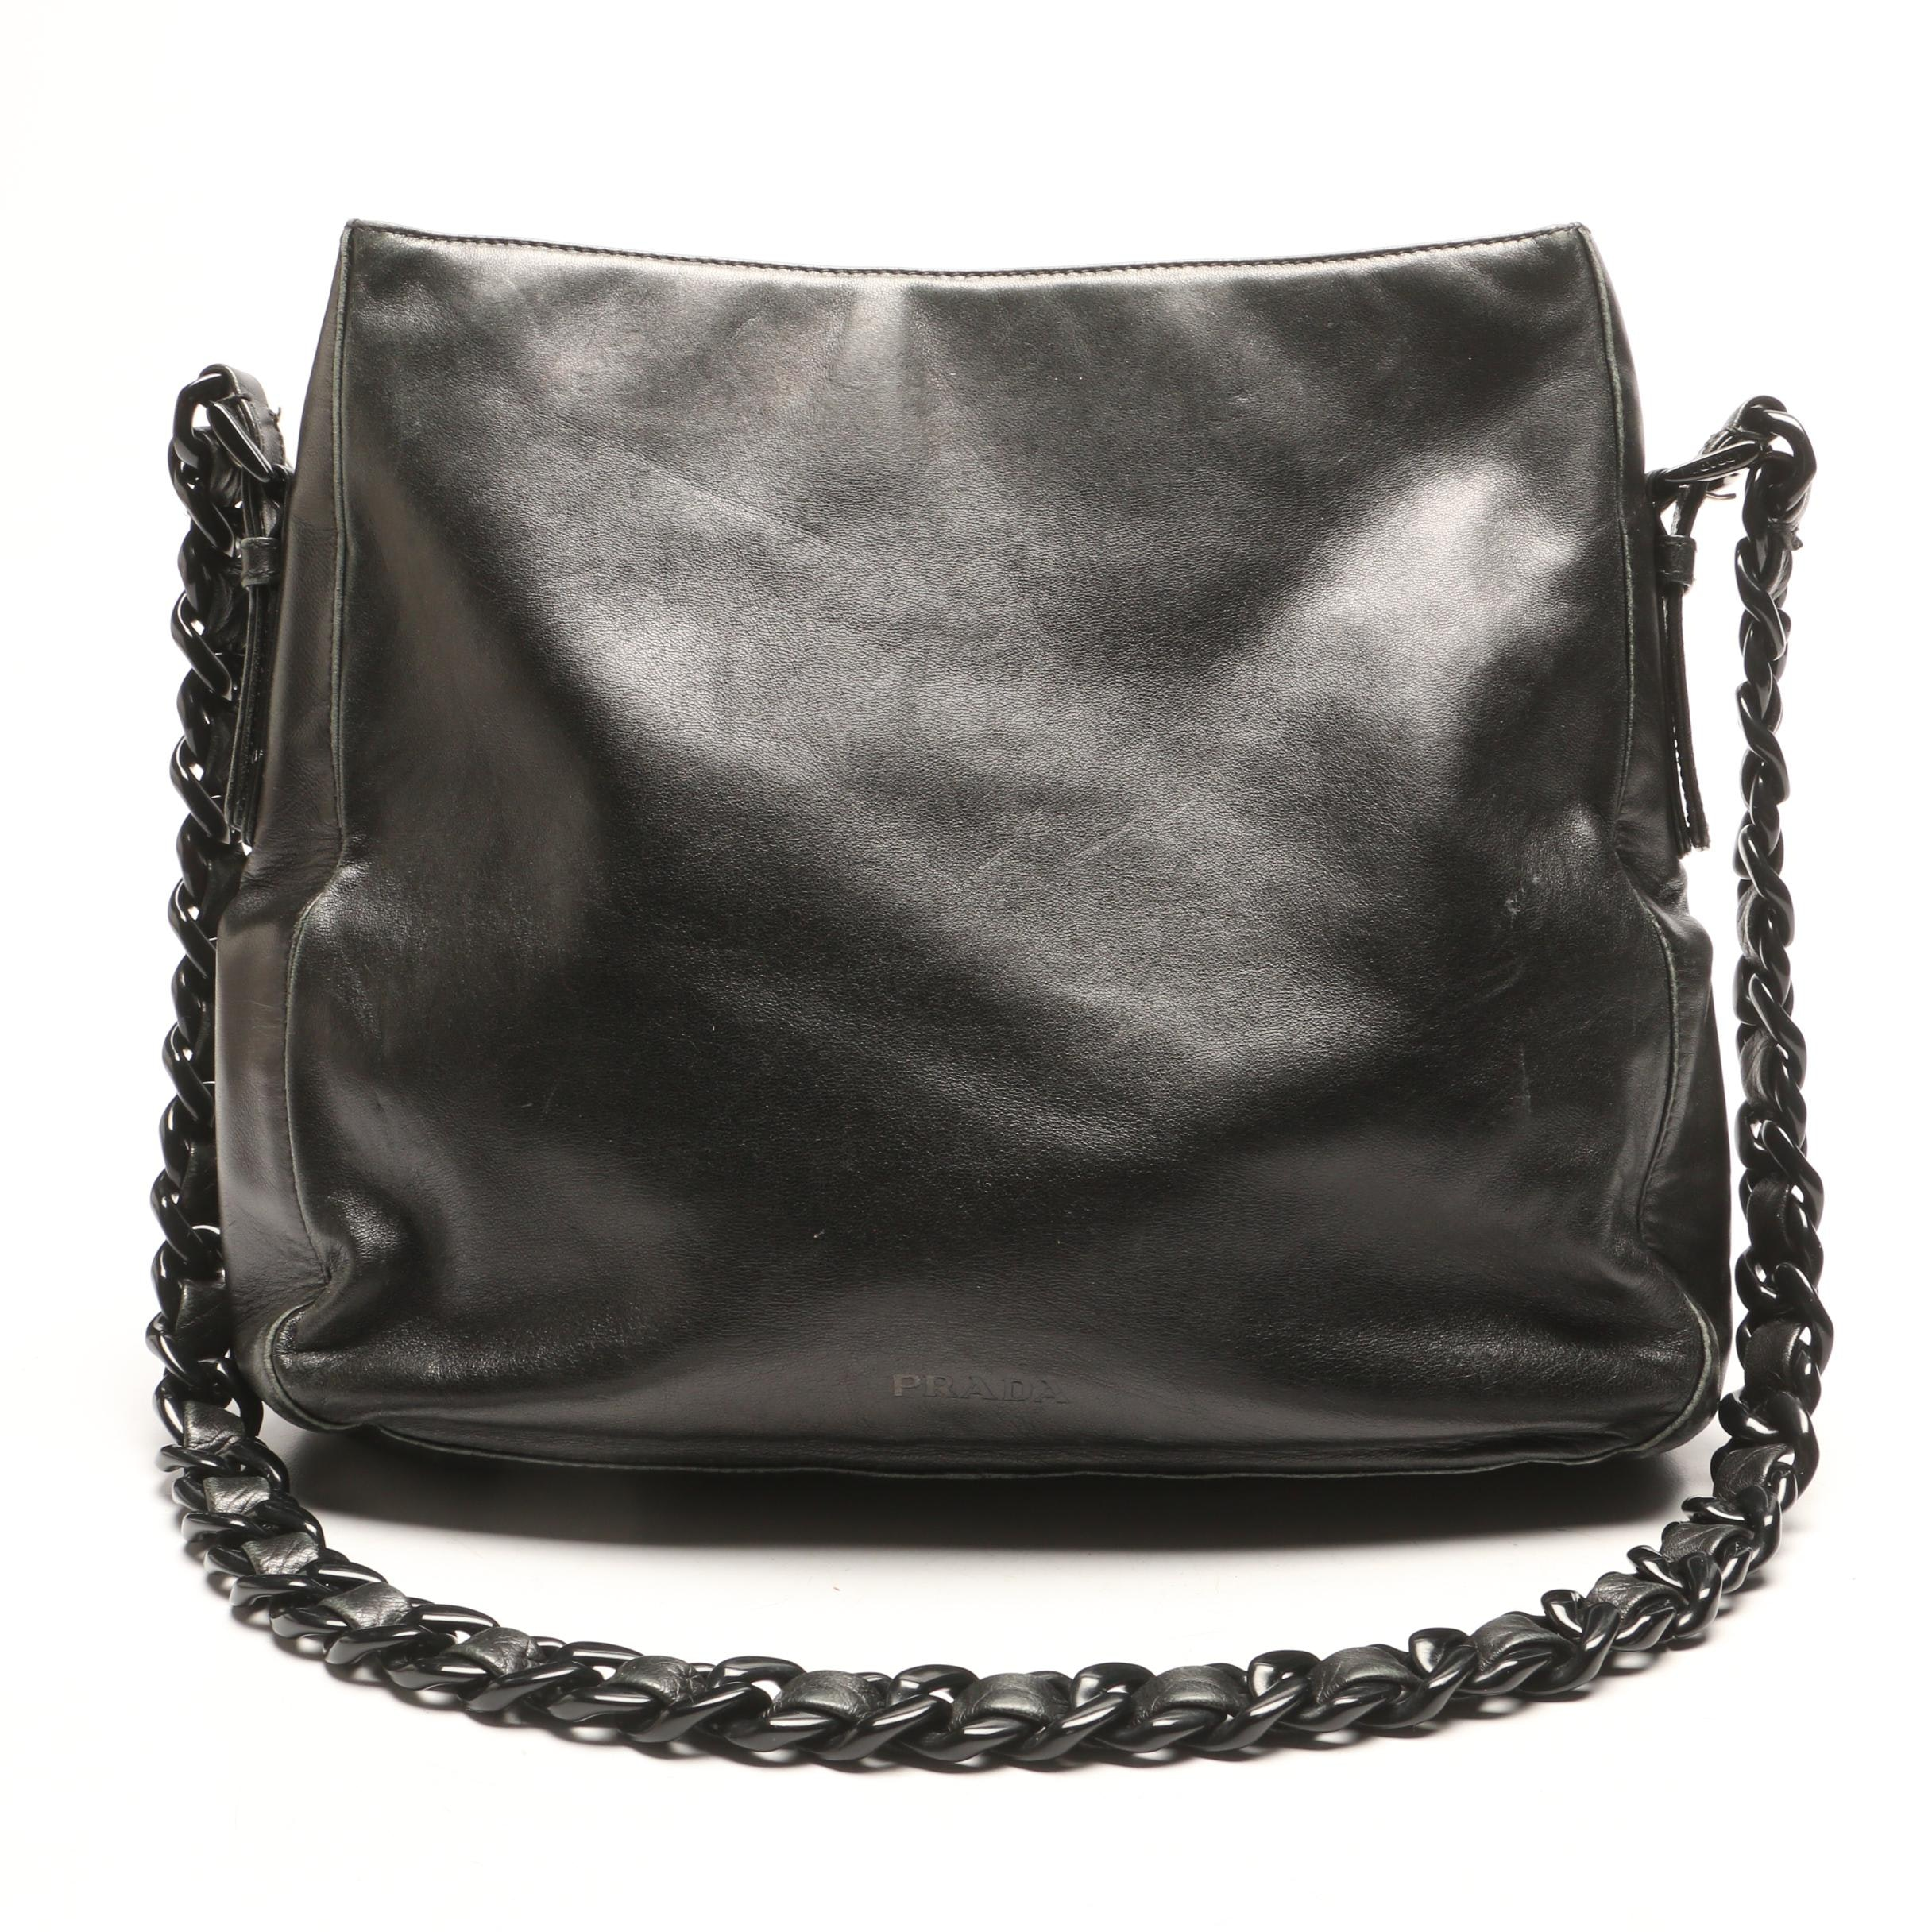 Prada Black Leather Shoulder Bag with Acrylic Chain and Leather Strap